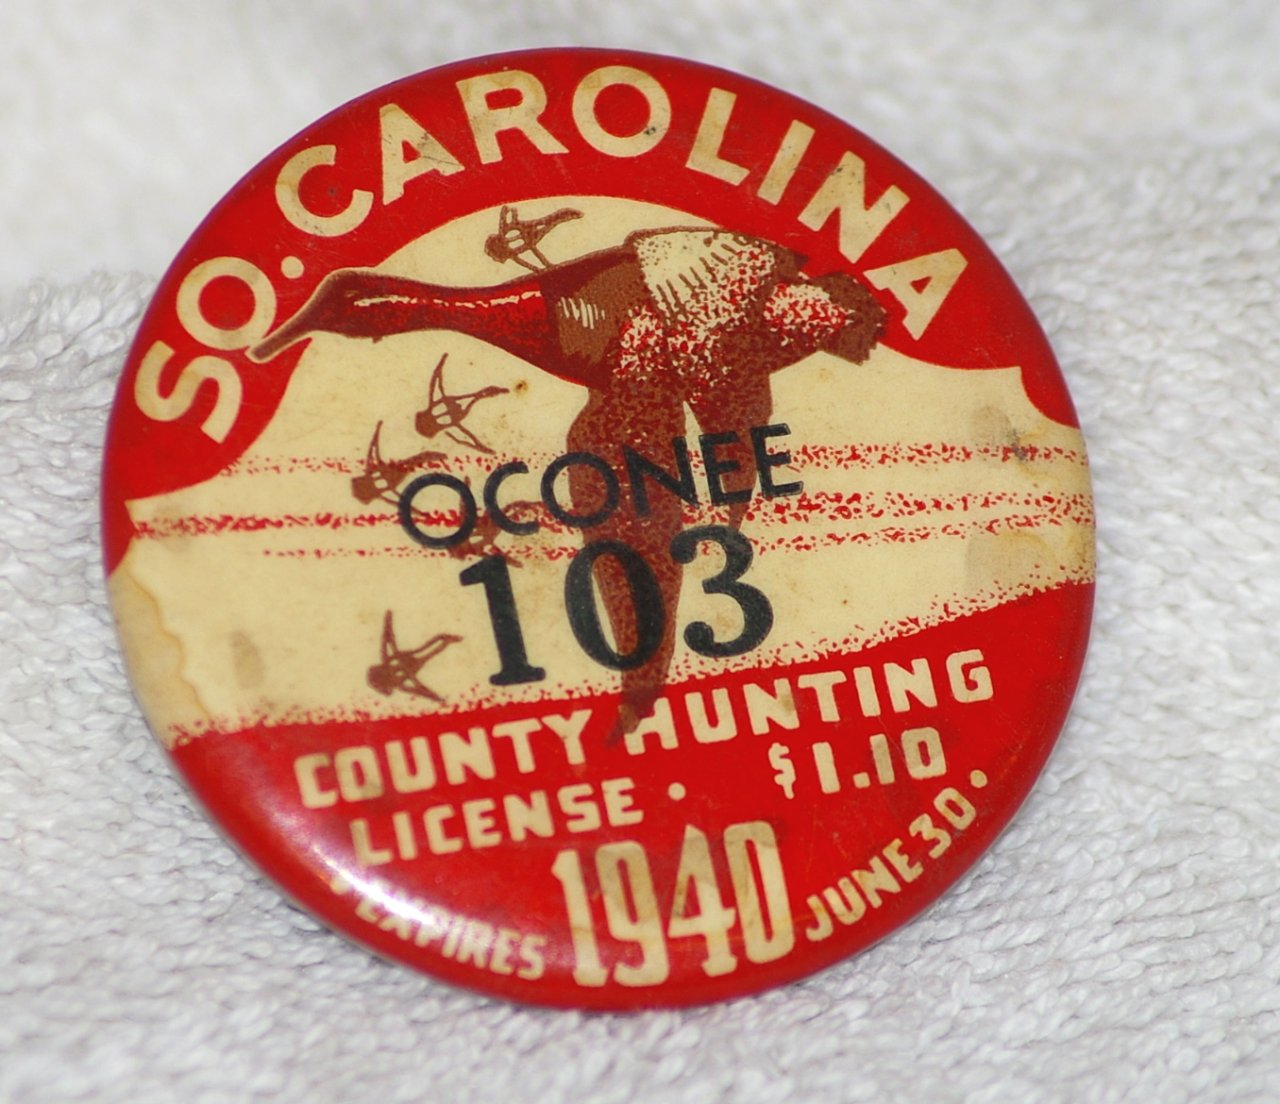 Oconee Co South Carolina Hunting License Badge with Ducks 1940